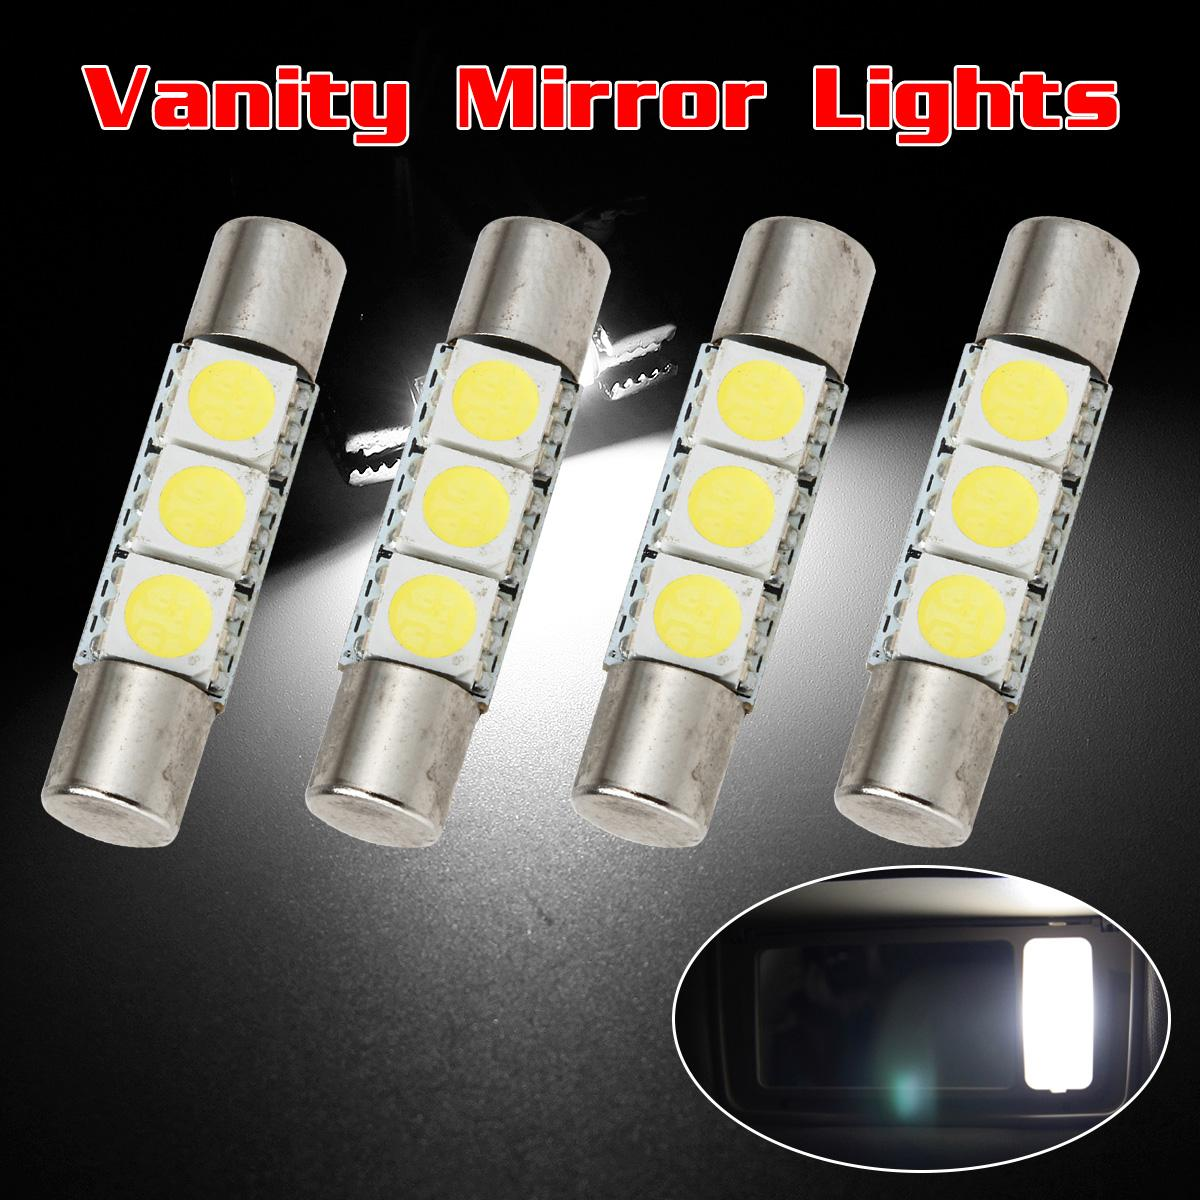 Vanity Lamp In Car : 4pcs White 5050 3-LED Car Interior Vanity Mirror Lights Sun Visor Lamps 12V eBay